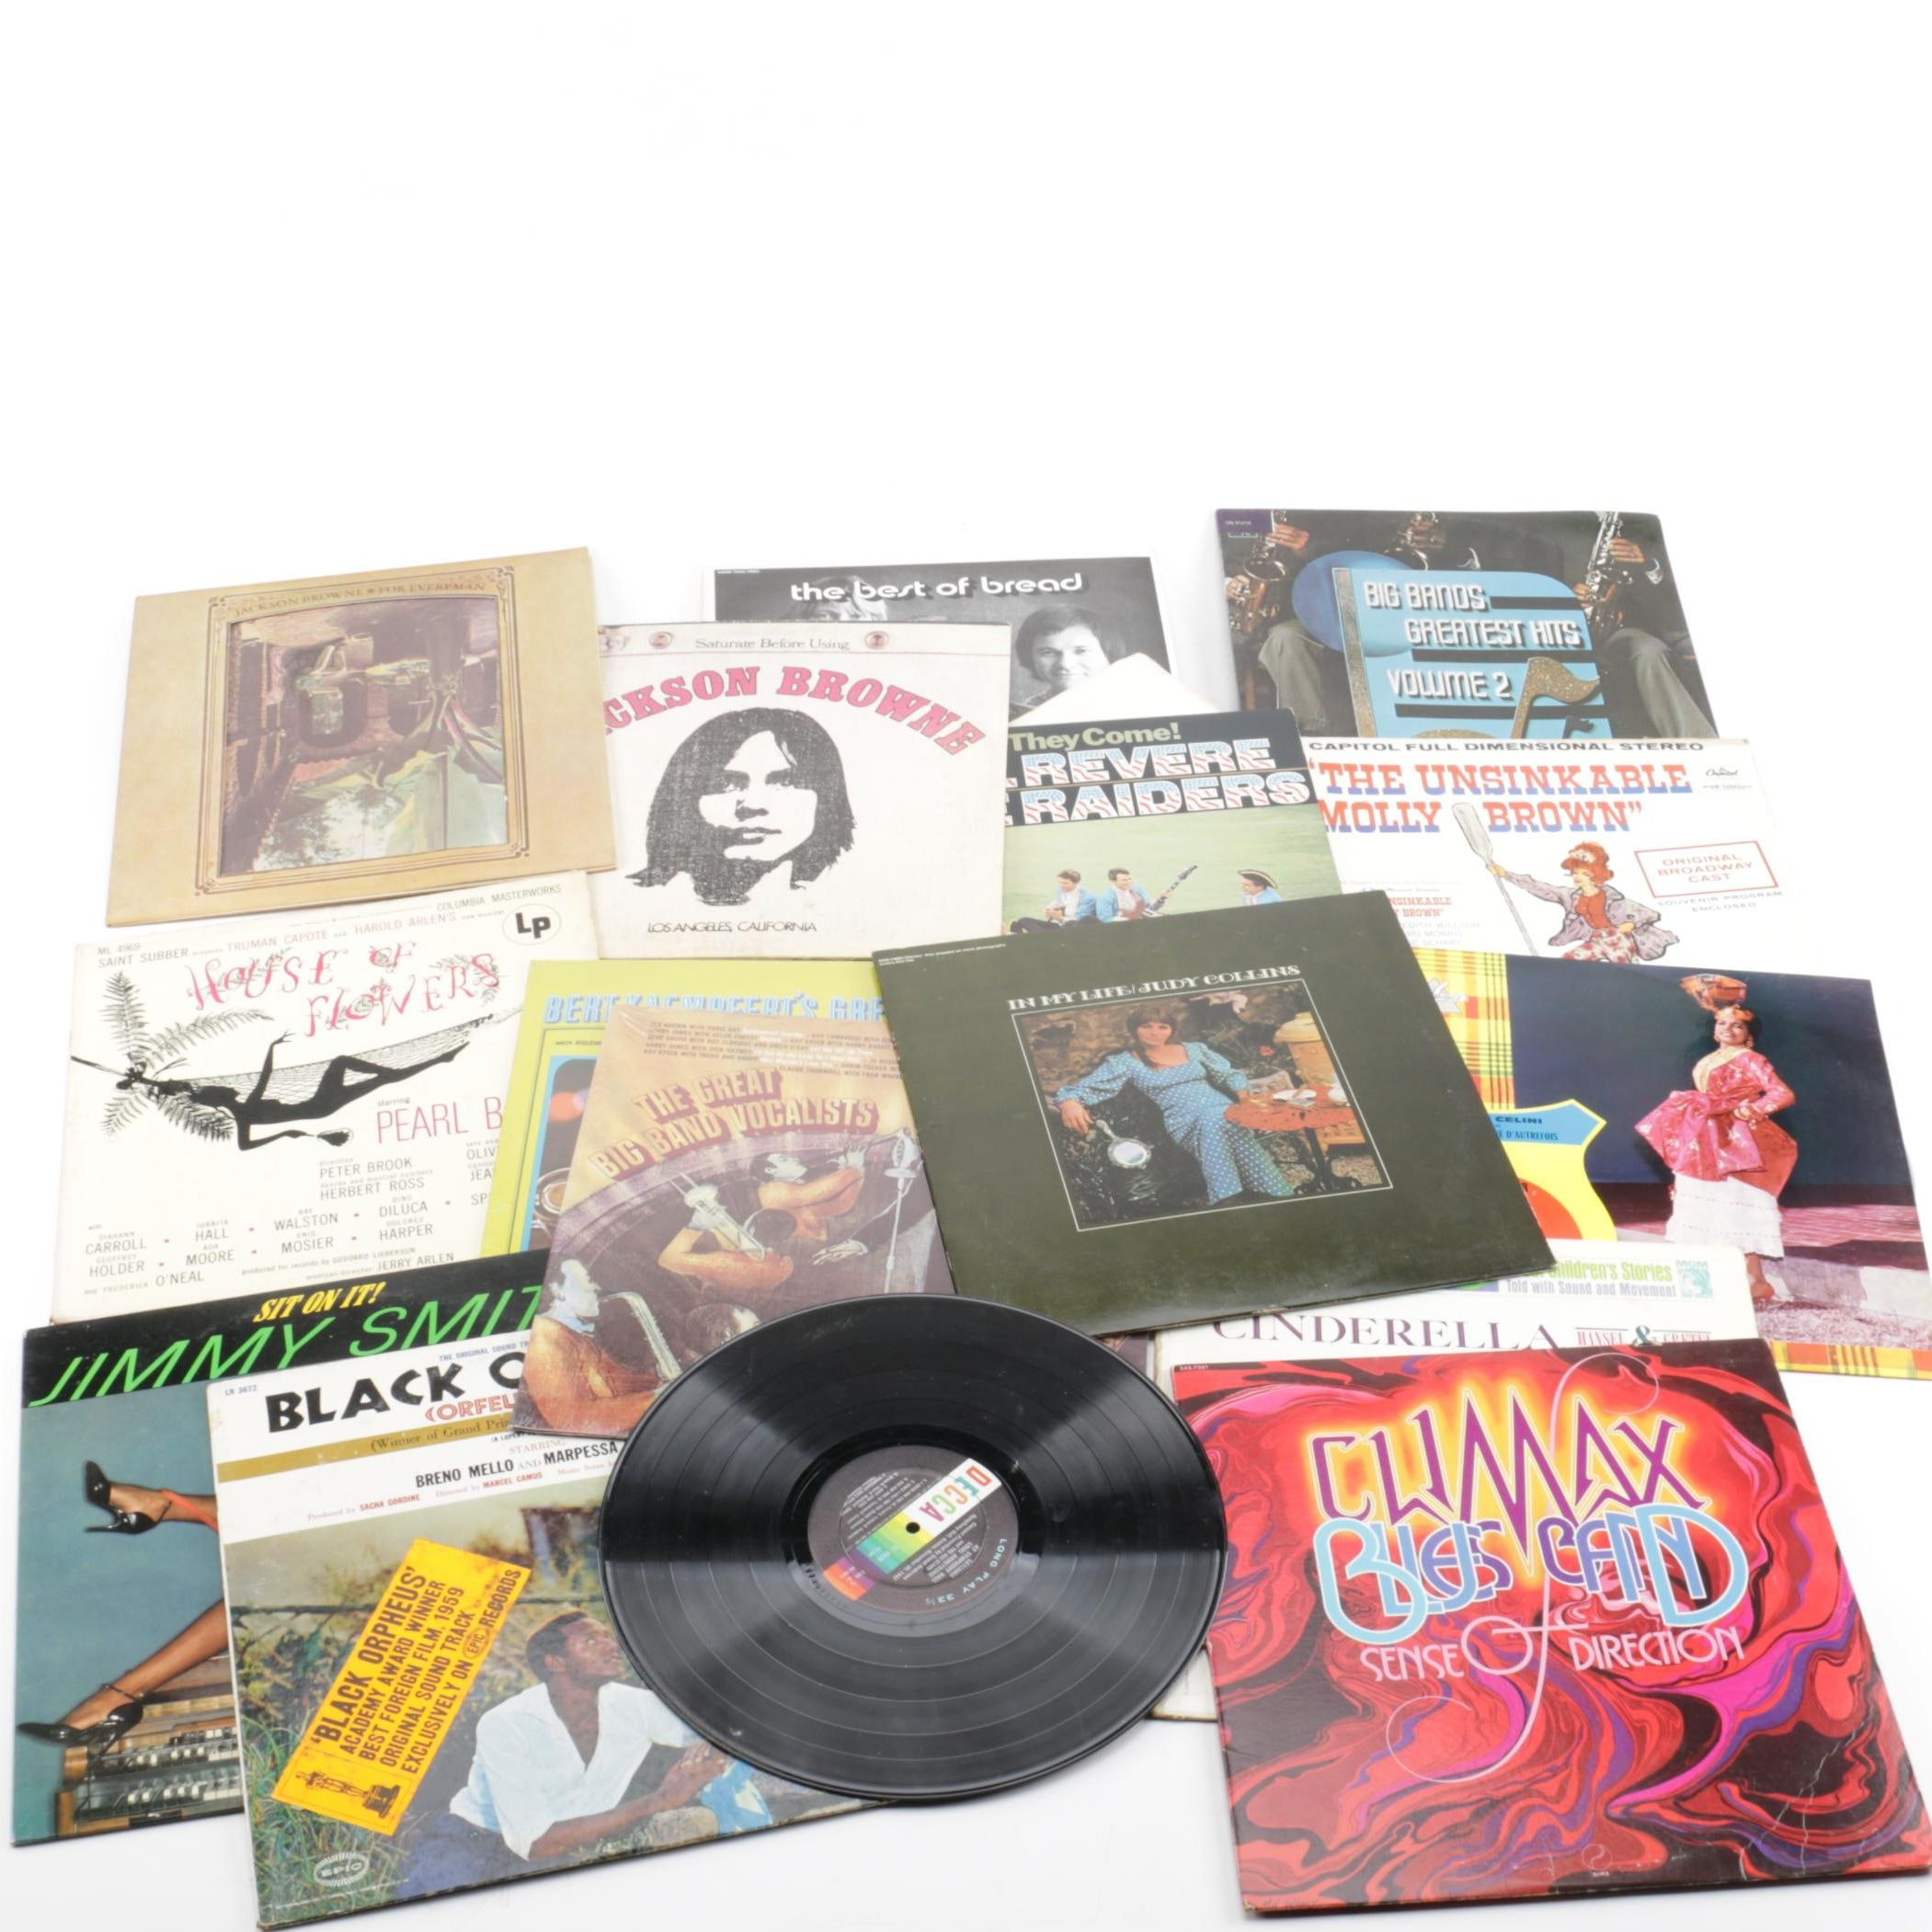 Jimmy Smith, Jackson Browne and Other Vintage LPs